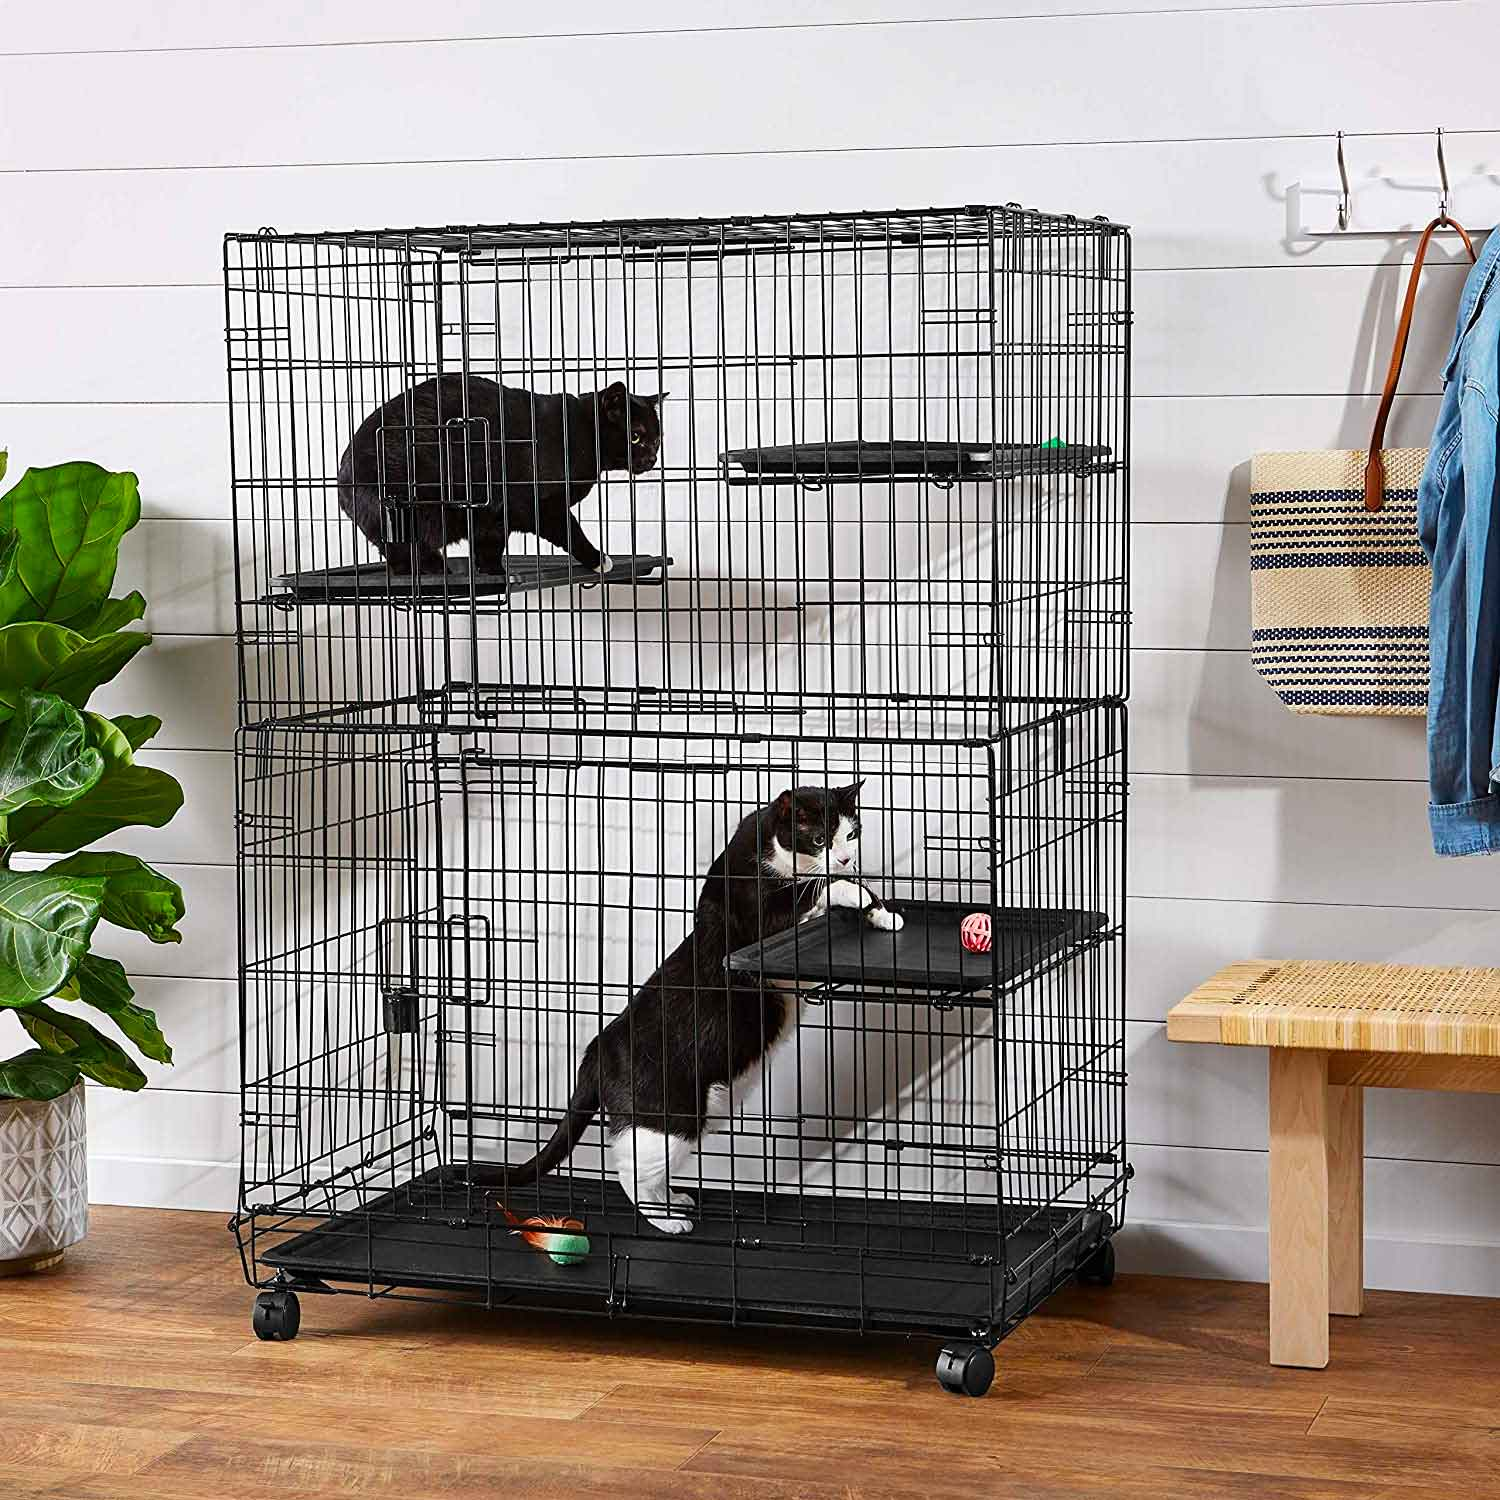 AmazonBasics Large 3-Tier Cat Cage Playpen Box Crate Kennel - 36 x 22 x 51 Inches